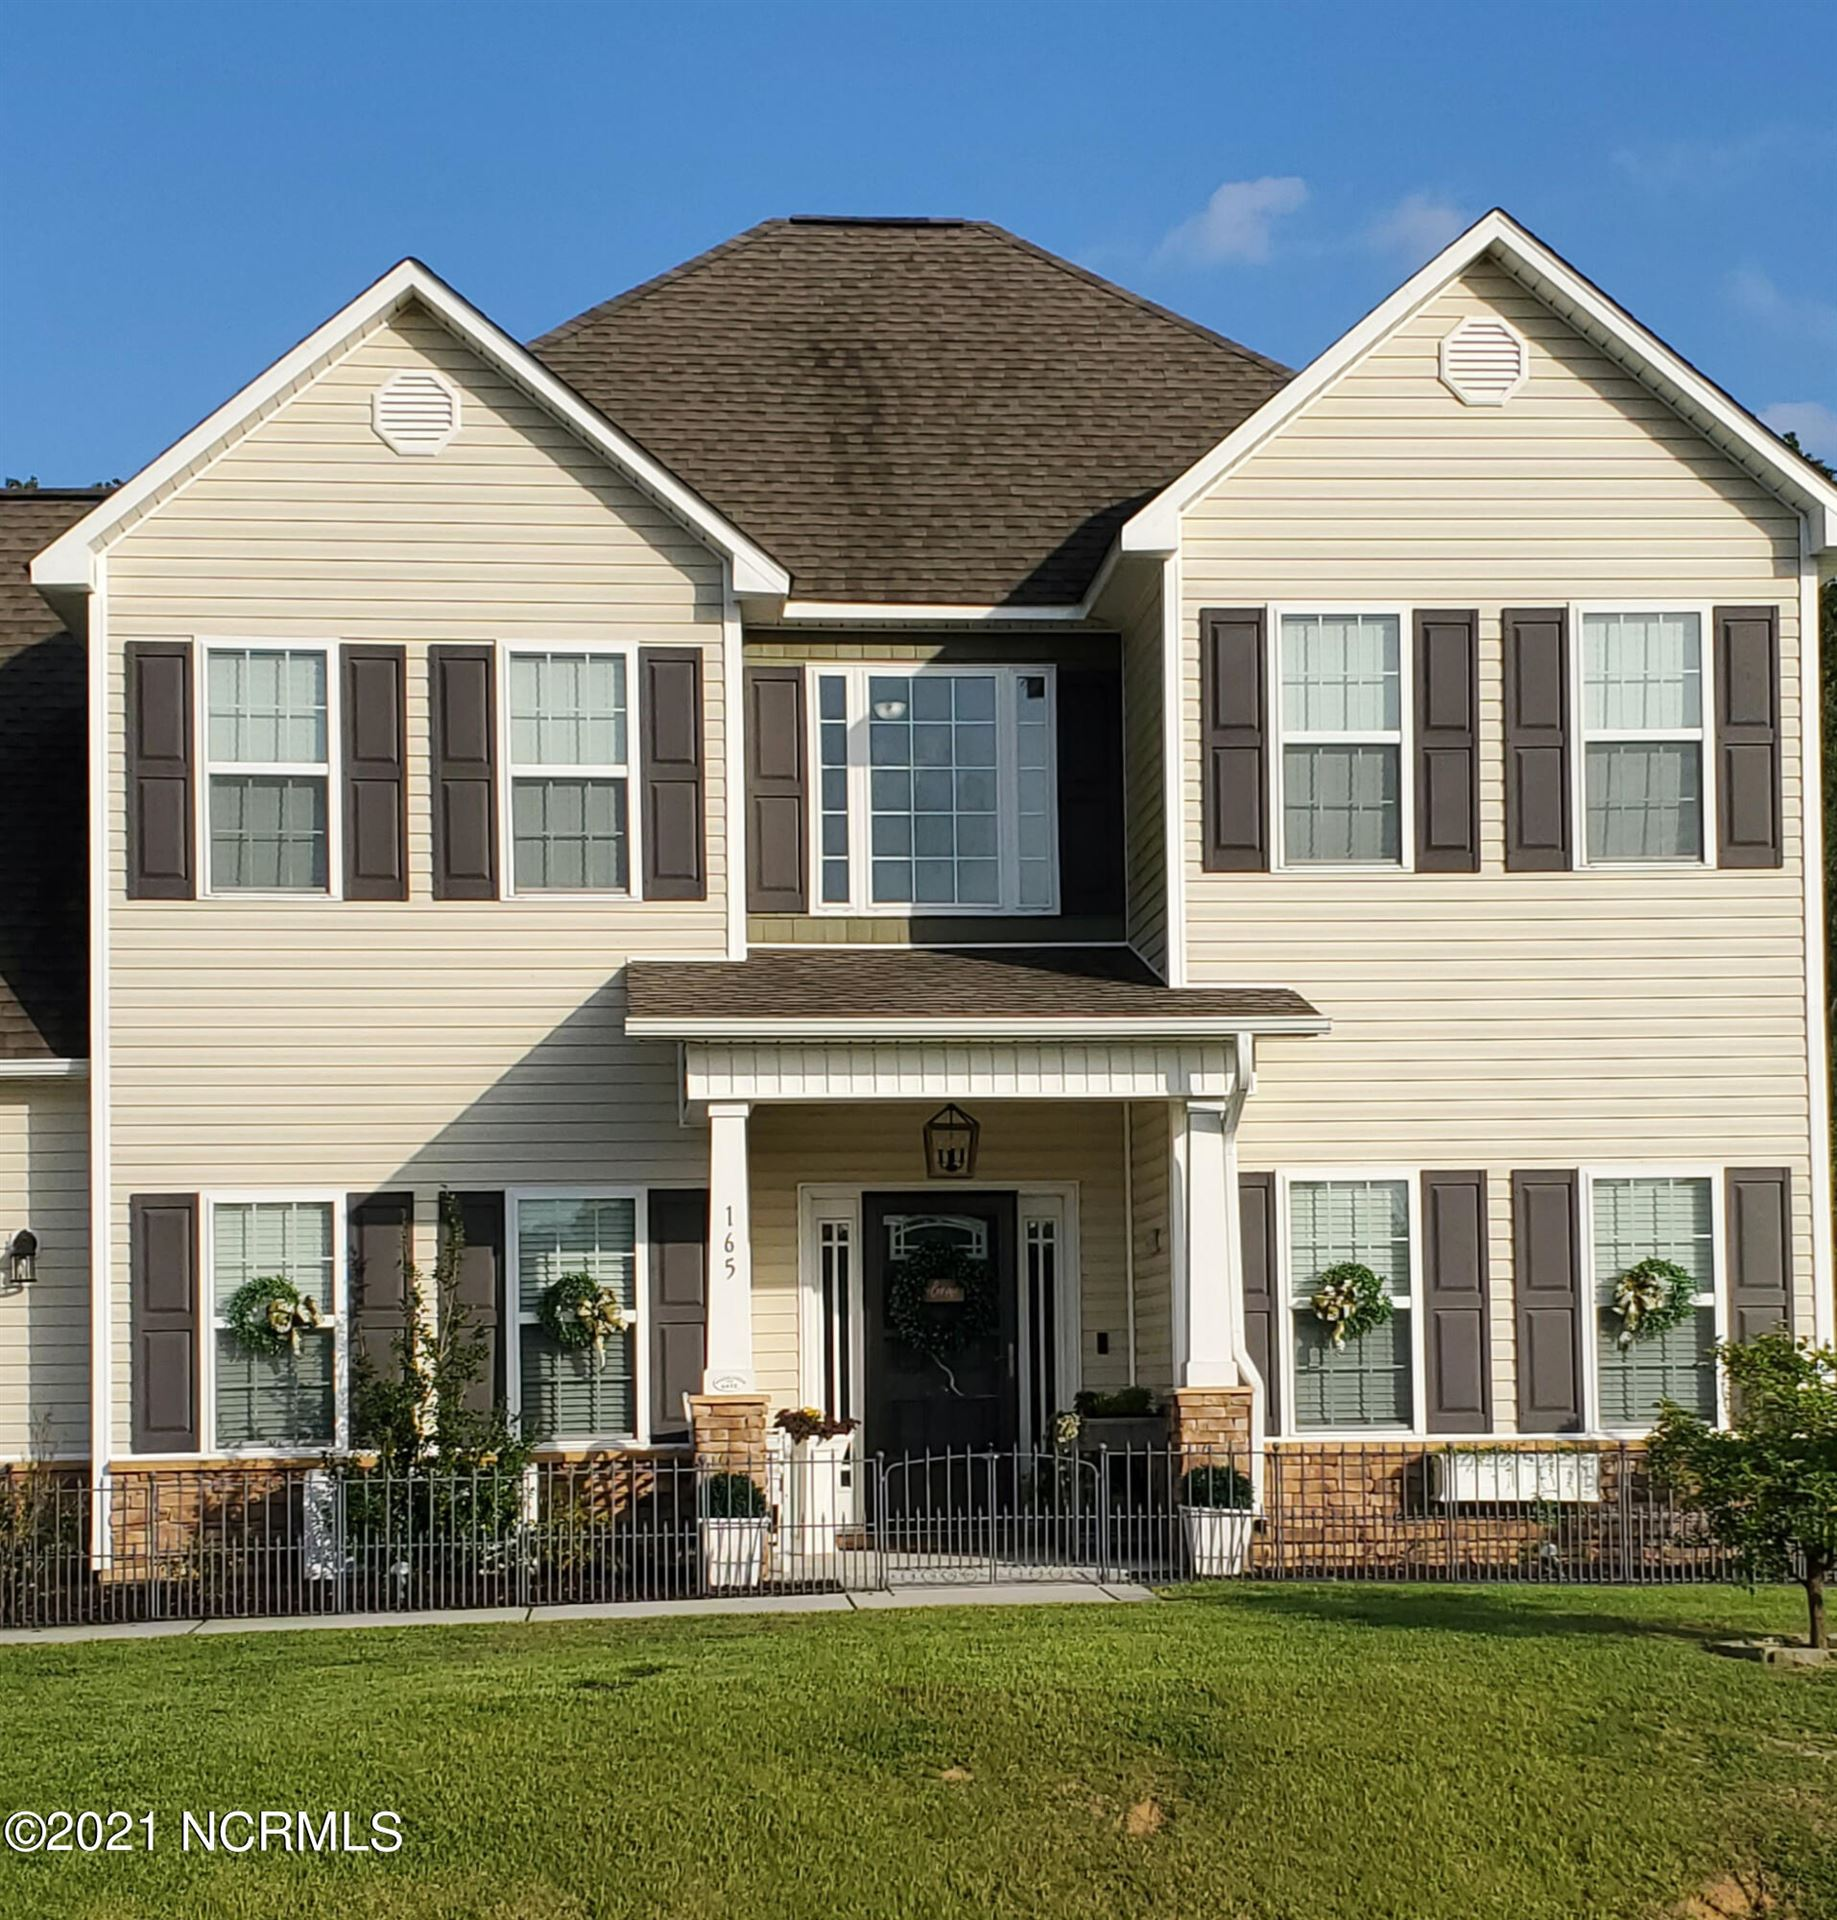 Photo of 165 Prelude Drive, Richlands, NC 28574 (MLS # 100289415)